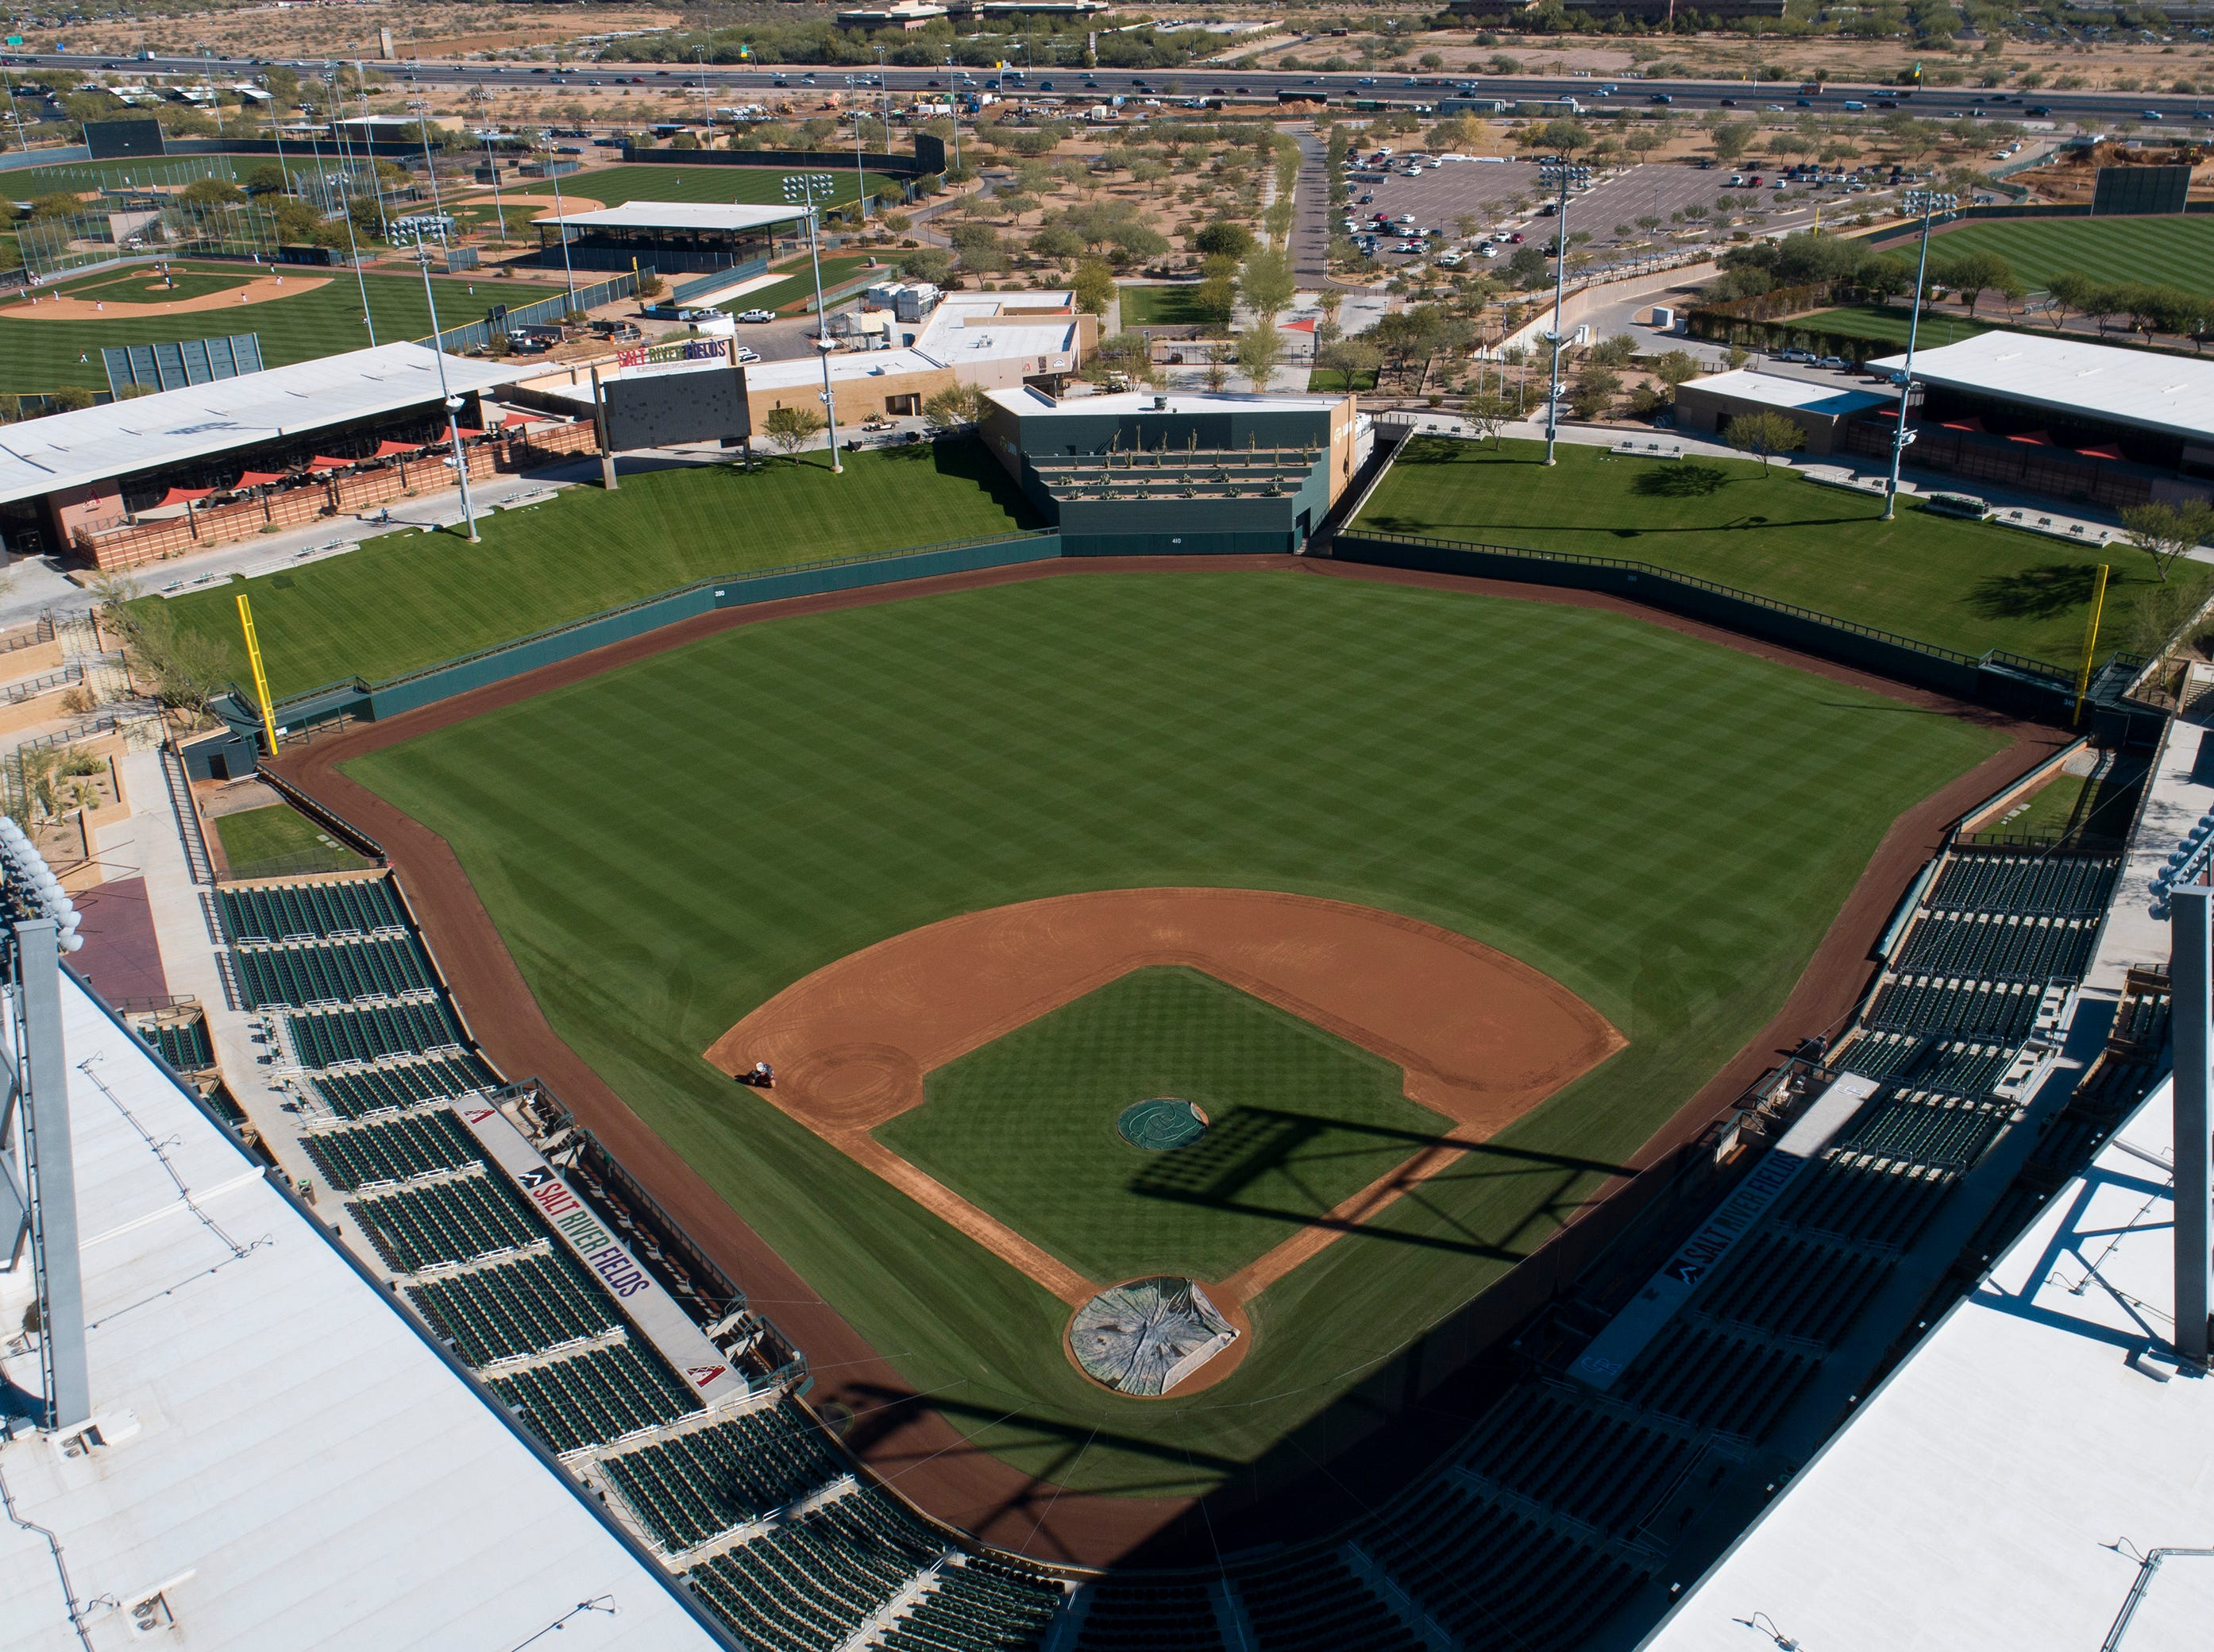 Aerial drone view of Salt River Fields at Talking Stick, Cactus League home of the Arizona Diamondbacks and Colorado Rockies, in Scottsdale, Arizona January 8, 2019.